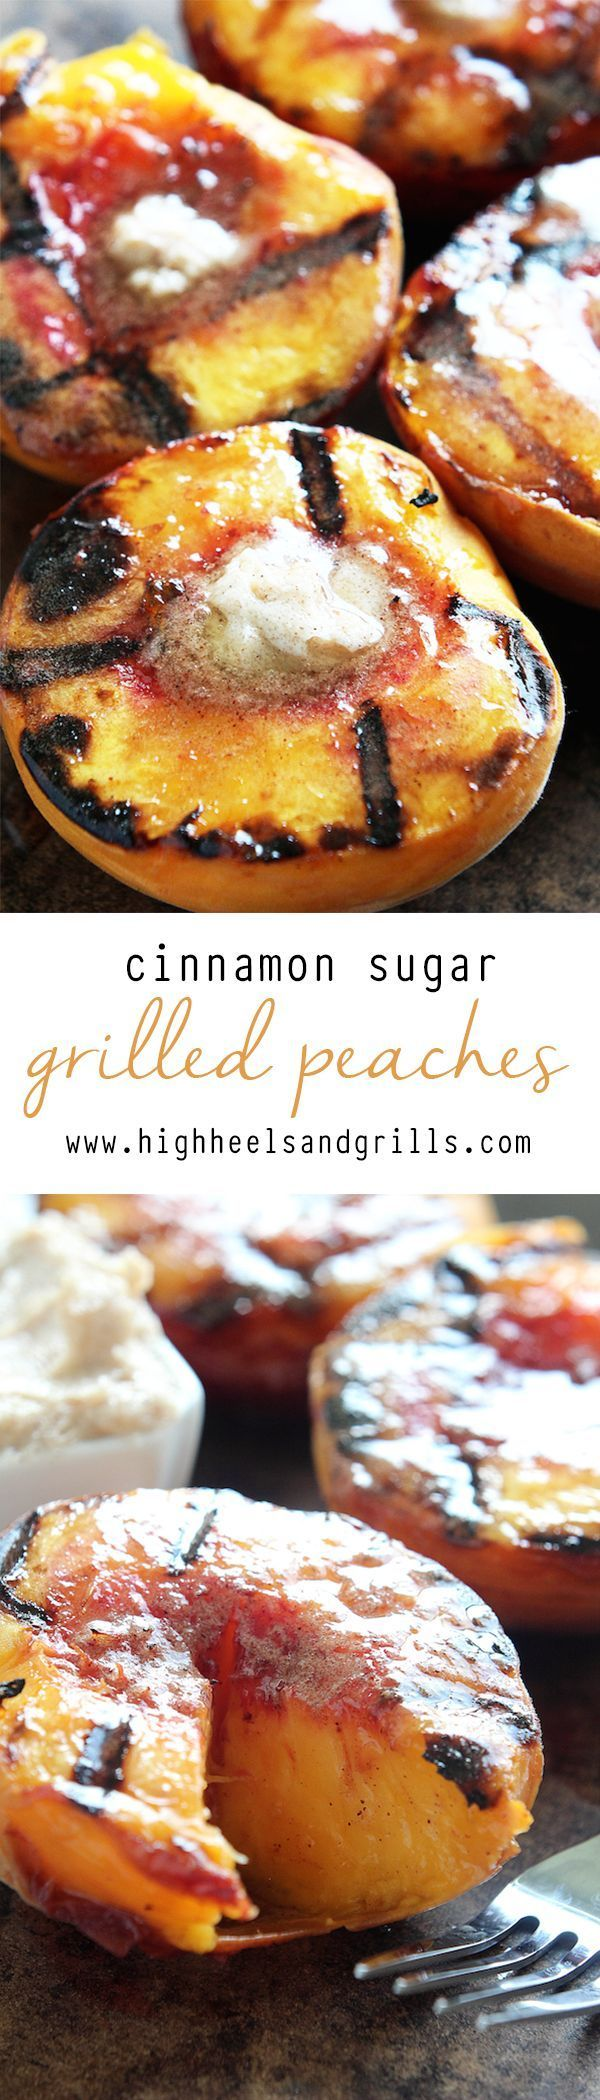 Sugar Grilled Peaches Cinnamon Sugar Grilled Peaches are a yummy dessert that can be made quick! They are topped with a cinnamon sugar butter and taste like little peach cobblers!Cinnamon Sugar Grilled Peaches are a yummy dessert that can be made quick! They are topped with a cinnamon sugar butter and taste like little peach cobblers!